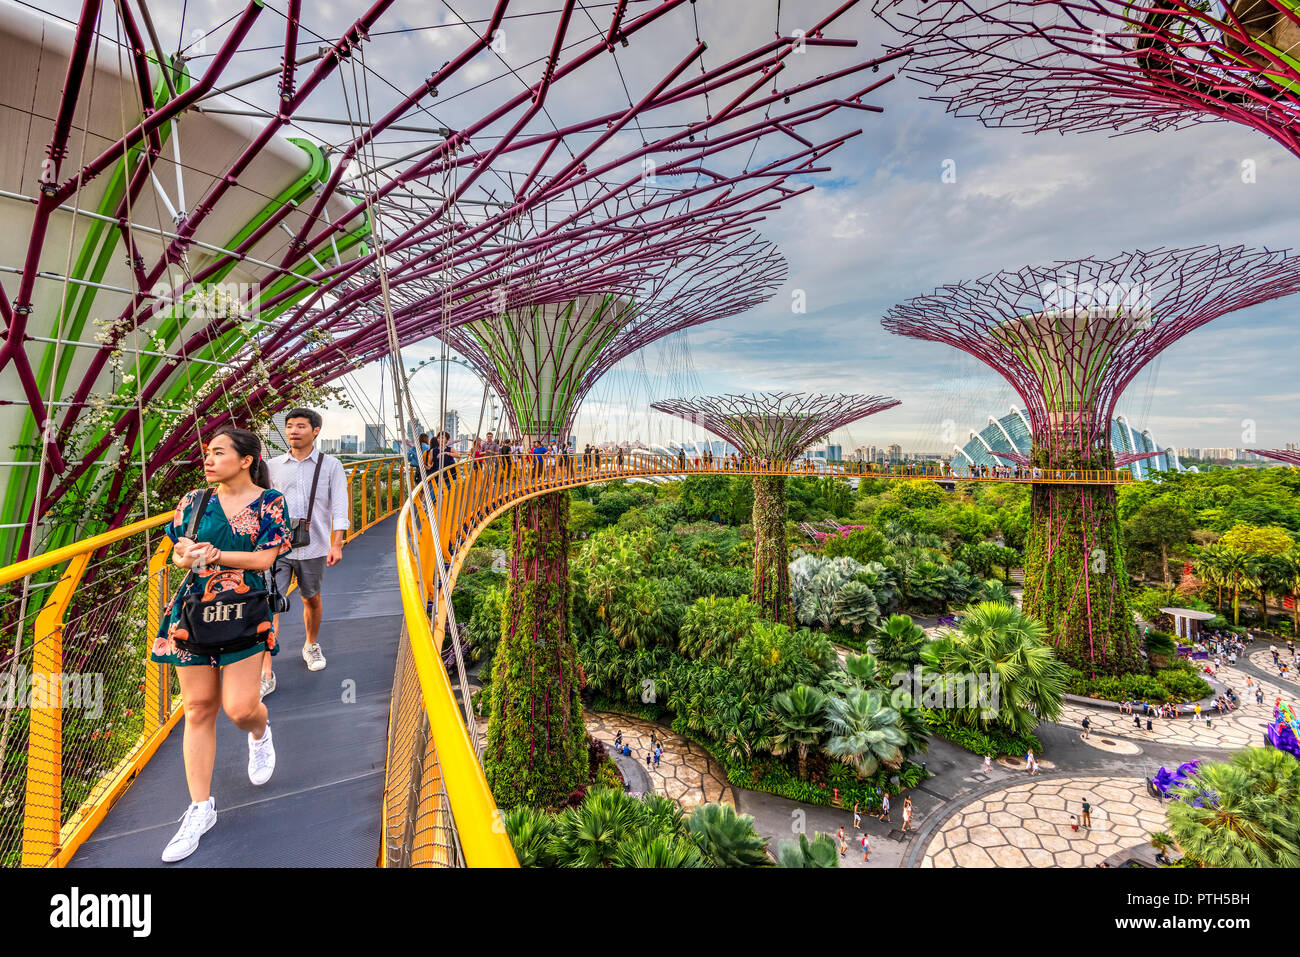 The Supertree Grove at Gardens by the Bay nature park, Singapore - Stock Image